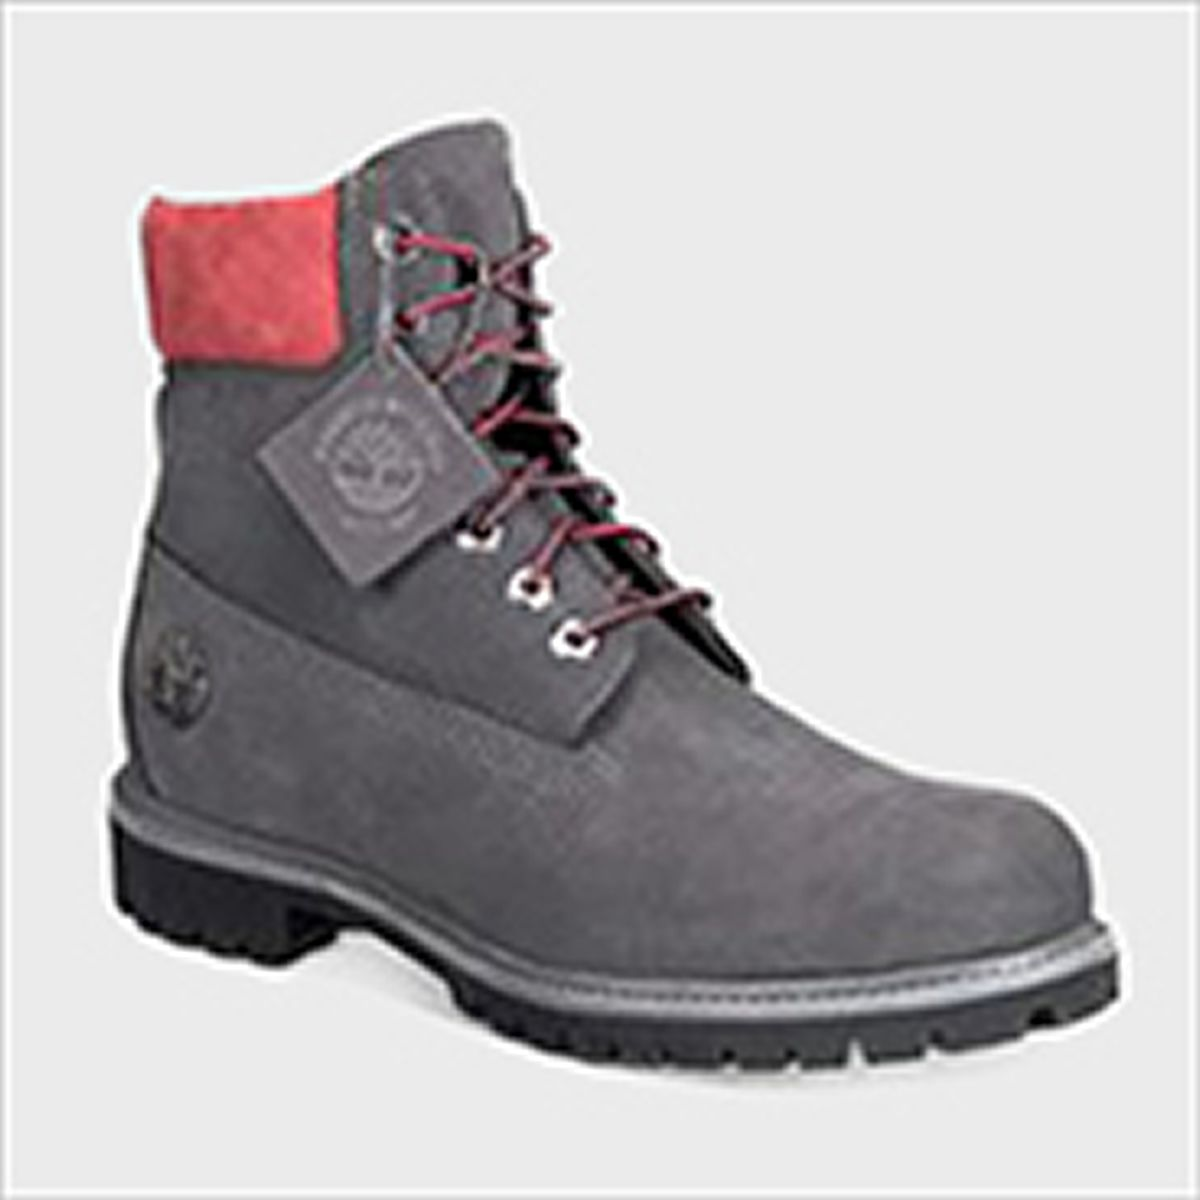 36db10a009553 Timberland Boots and Shoes For Men - Macy s